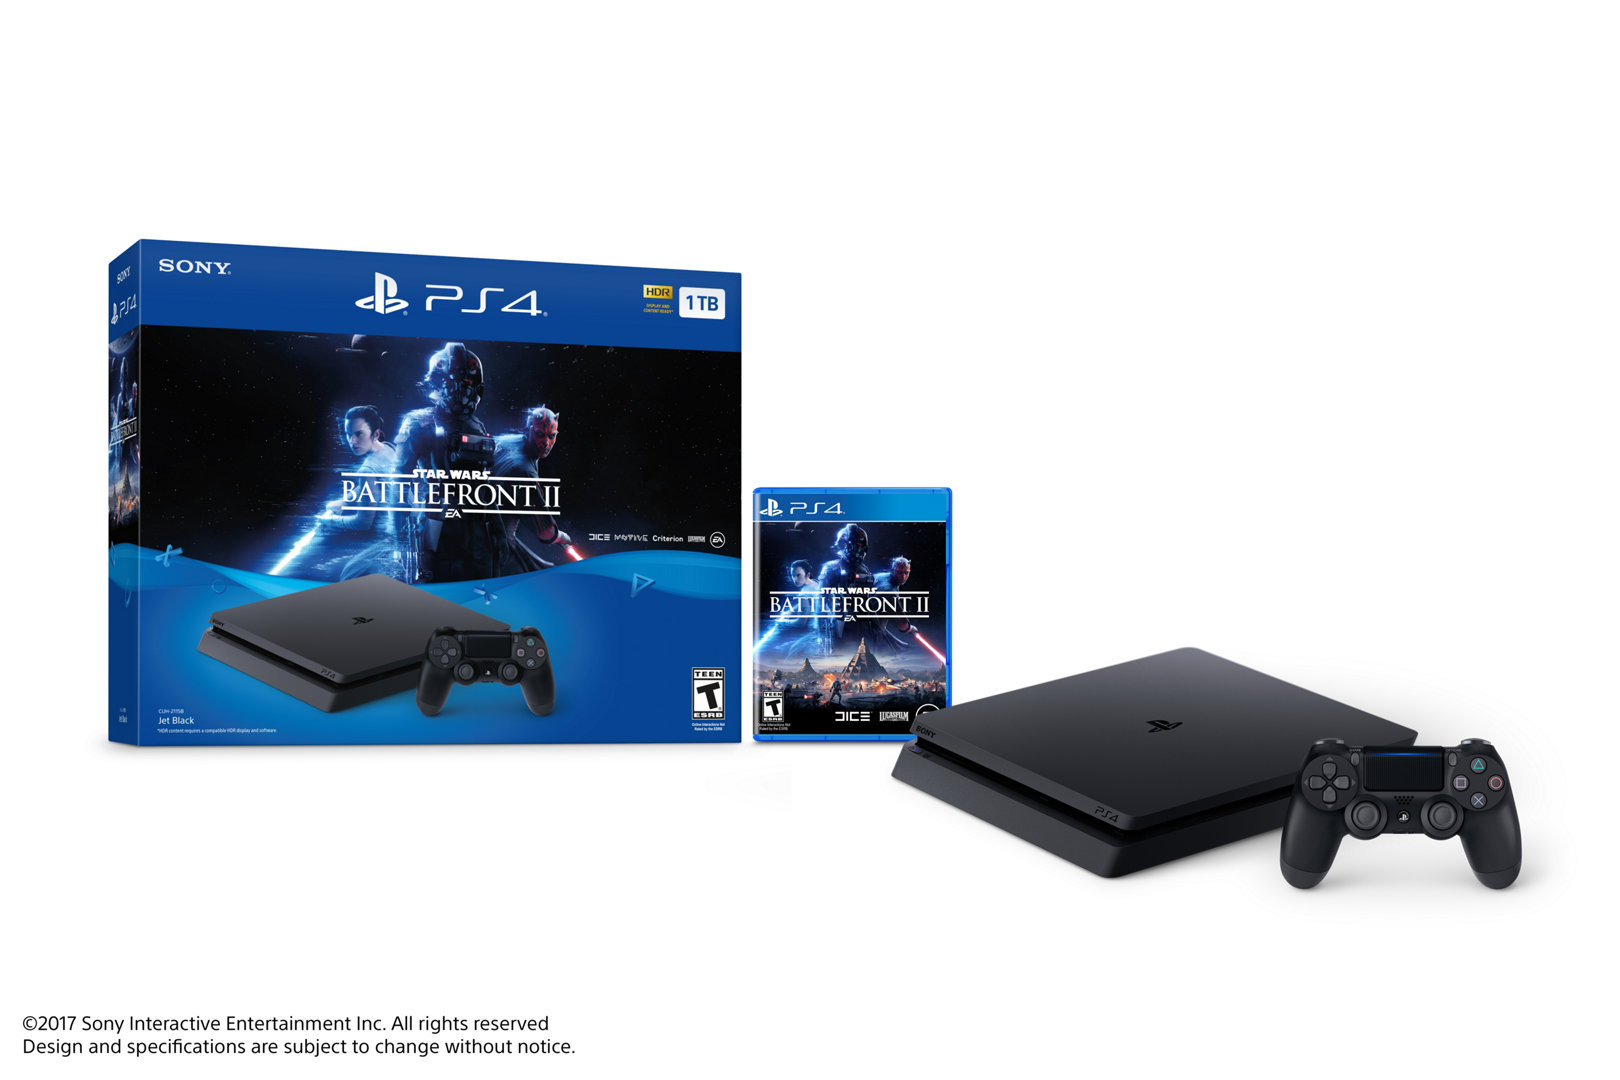 Playstation 4 (for the players)